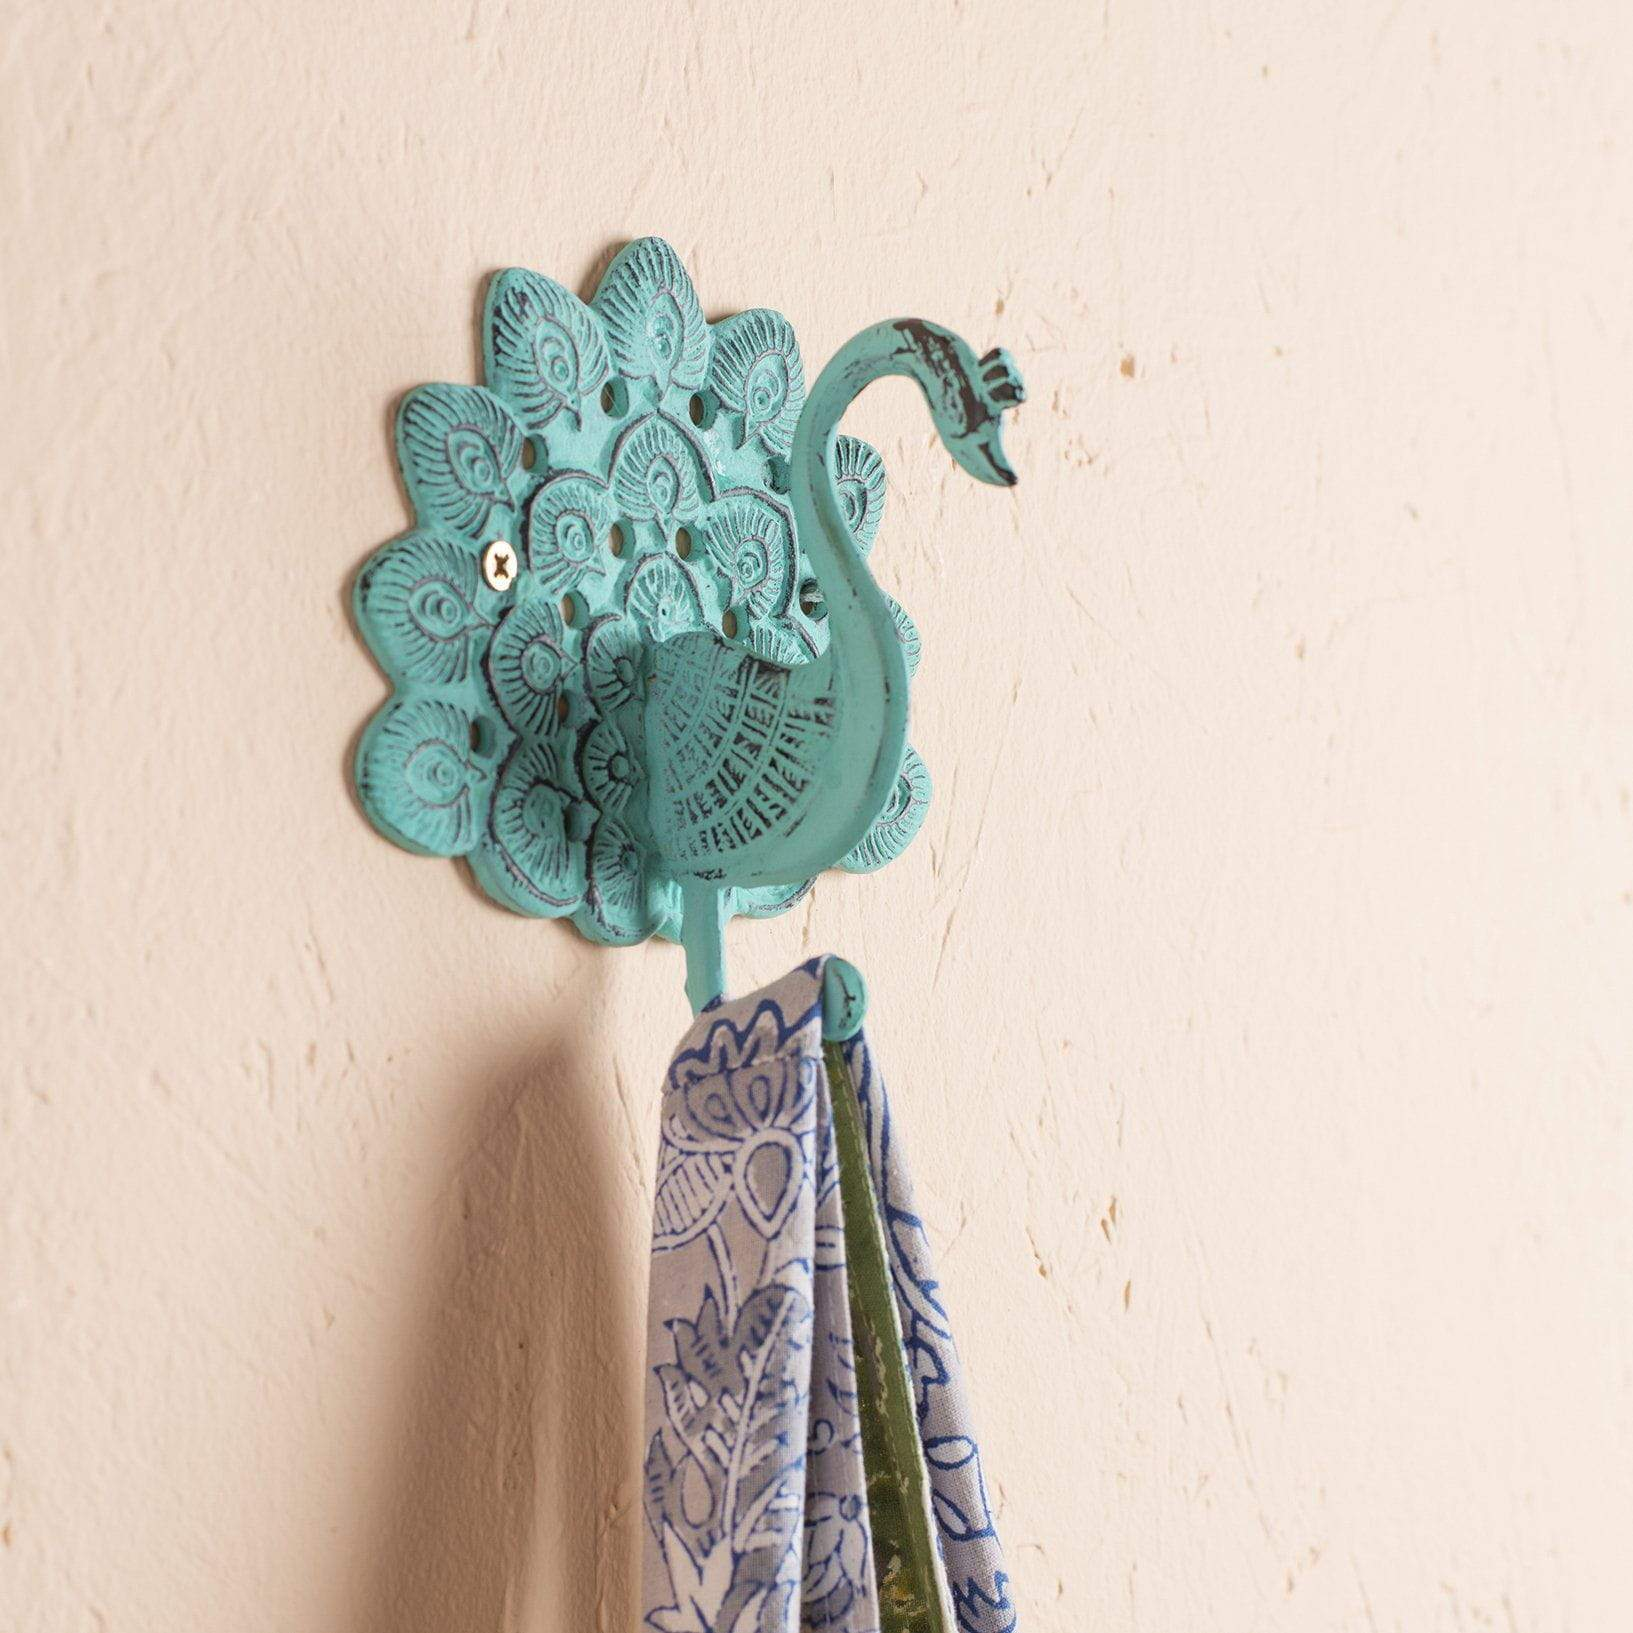 Ian Snow Ltd Verdigris Iron Peacock Hook